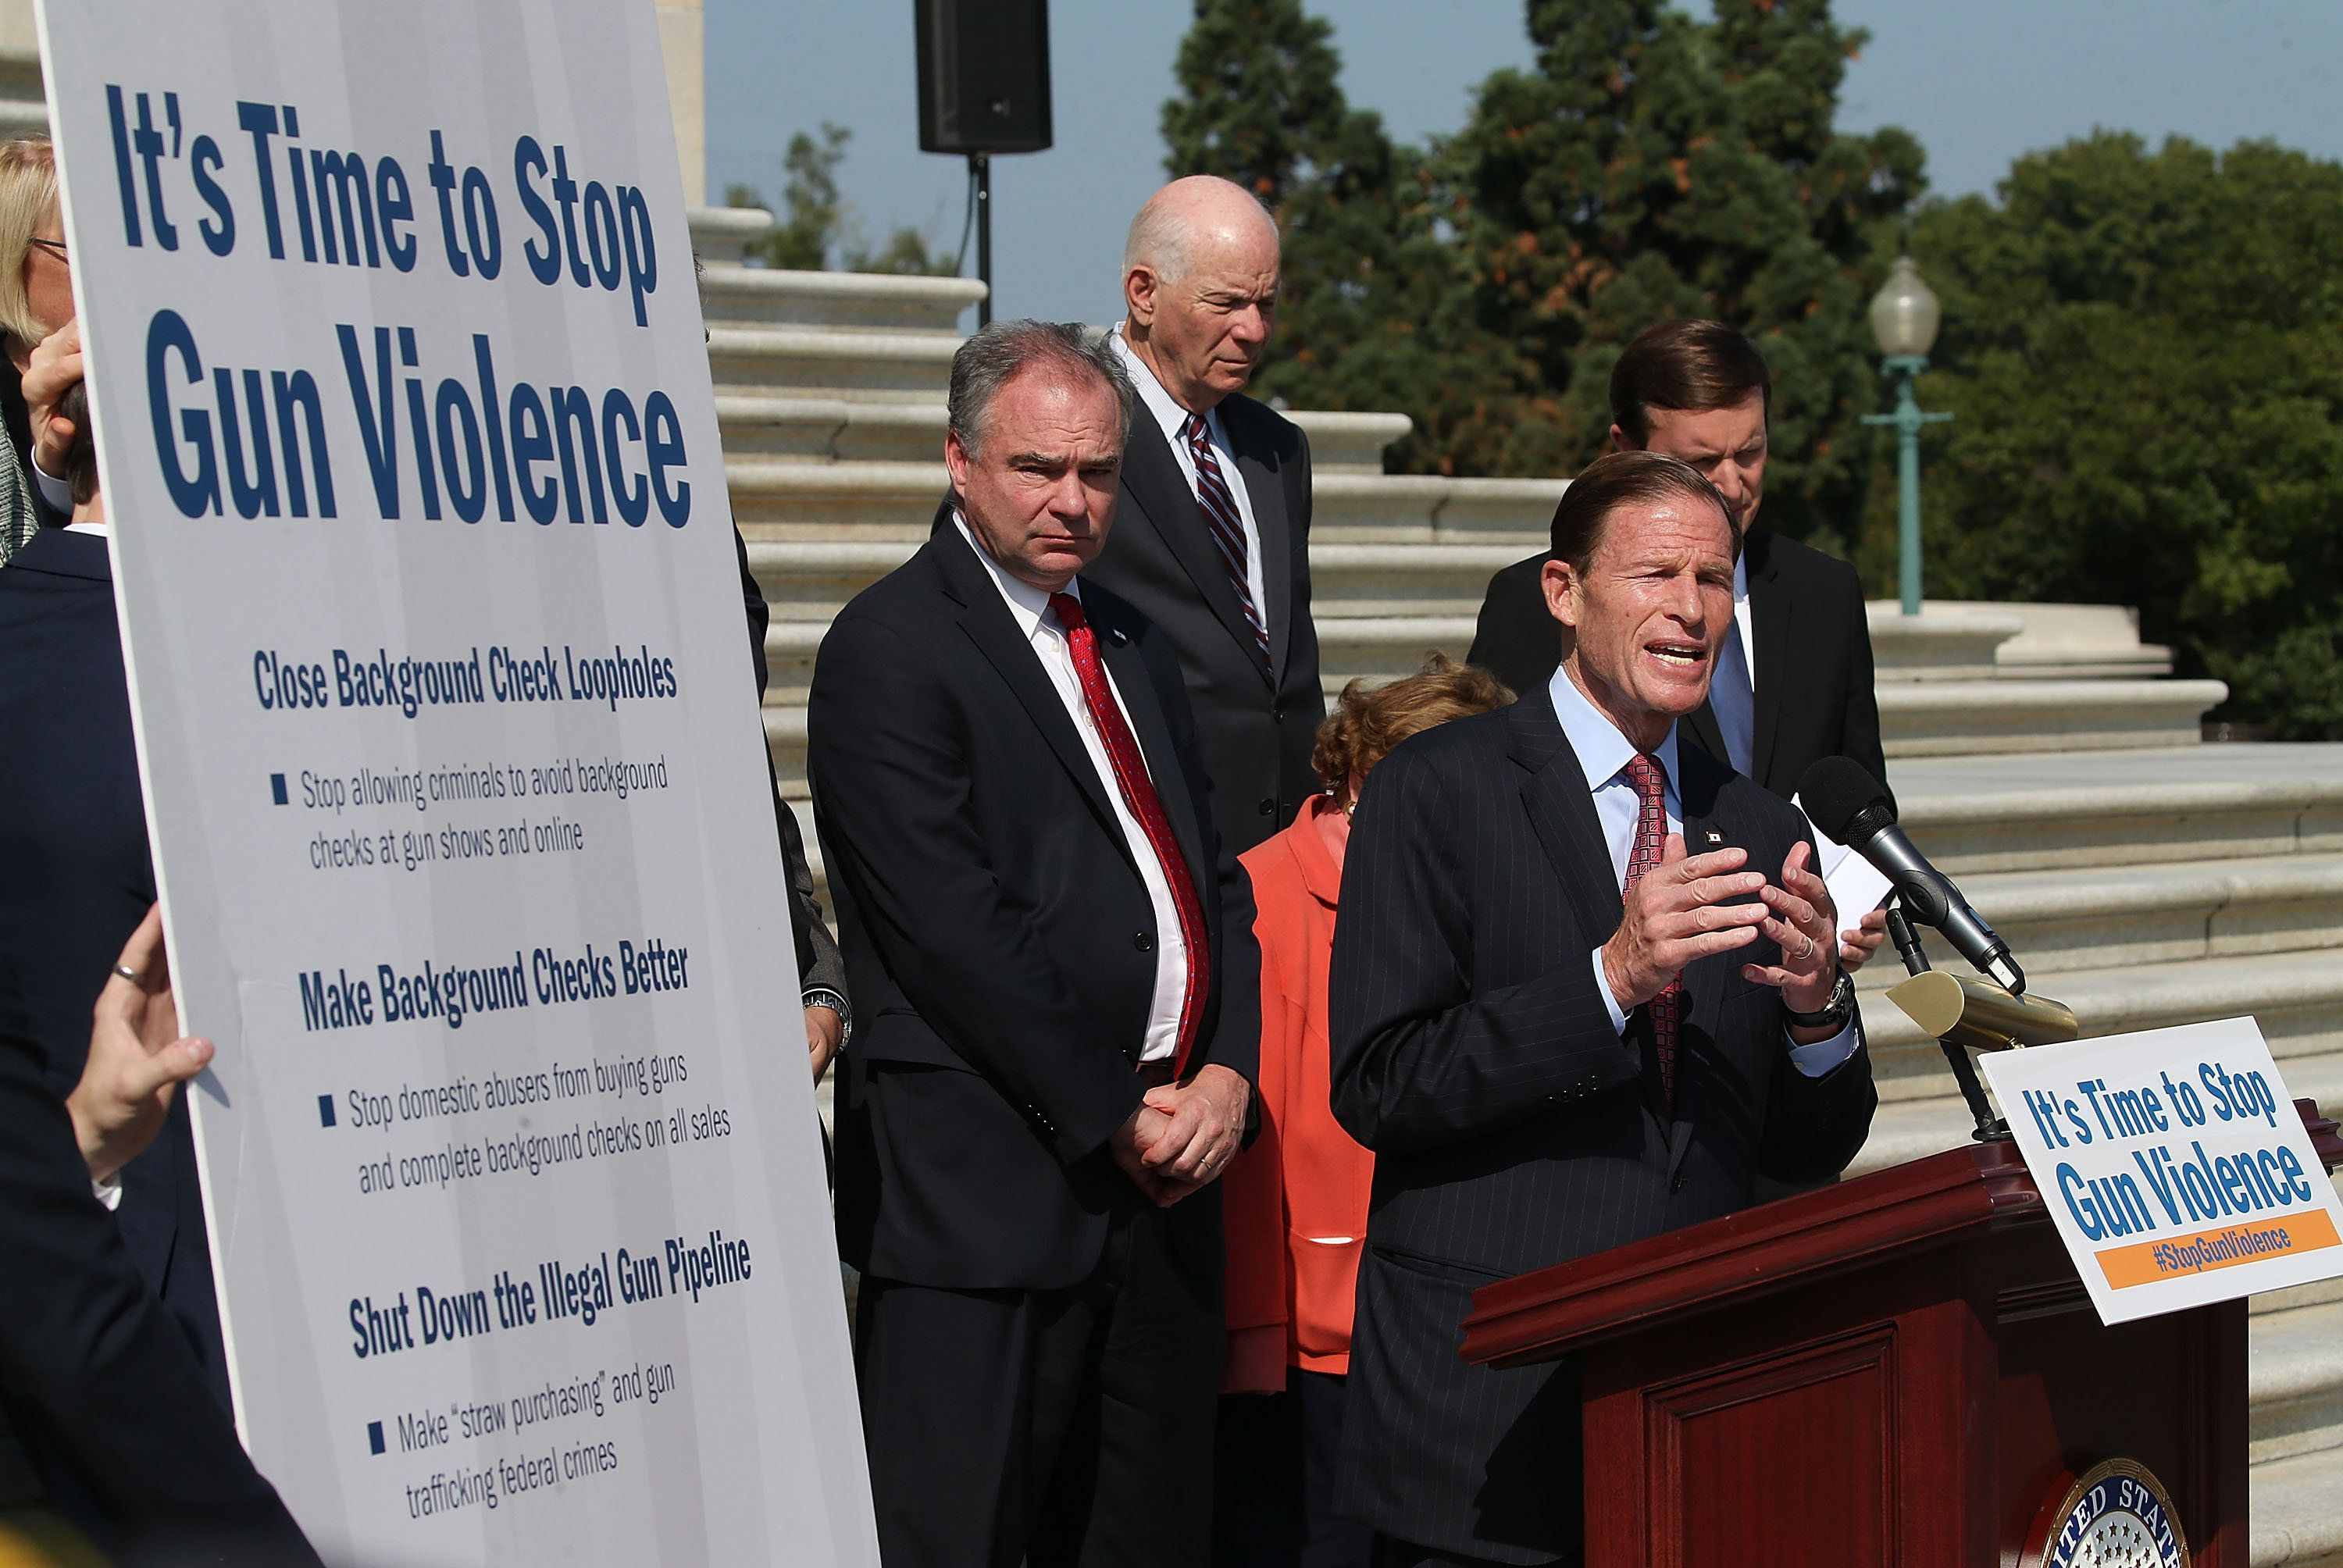 WASHINGTON, DC - OCTOBER 08:  Sen. Richard Blumenthal (D-CT) (R) is flanked by Senate colleagues while speaking about gun control during a news conference on the Senate steps at the US Capitol, October 8, 2015 in Washington, DC. Senate Democrats unveiled their principles for new gun safety legislation and announced a major public outreach effort to galvanize the country to encourage Congress to pass new legislation.  (Photo by Mark Wilson/Getty Images)